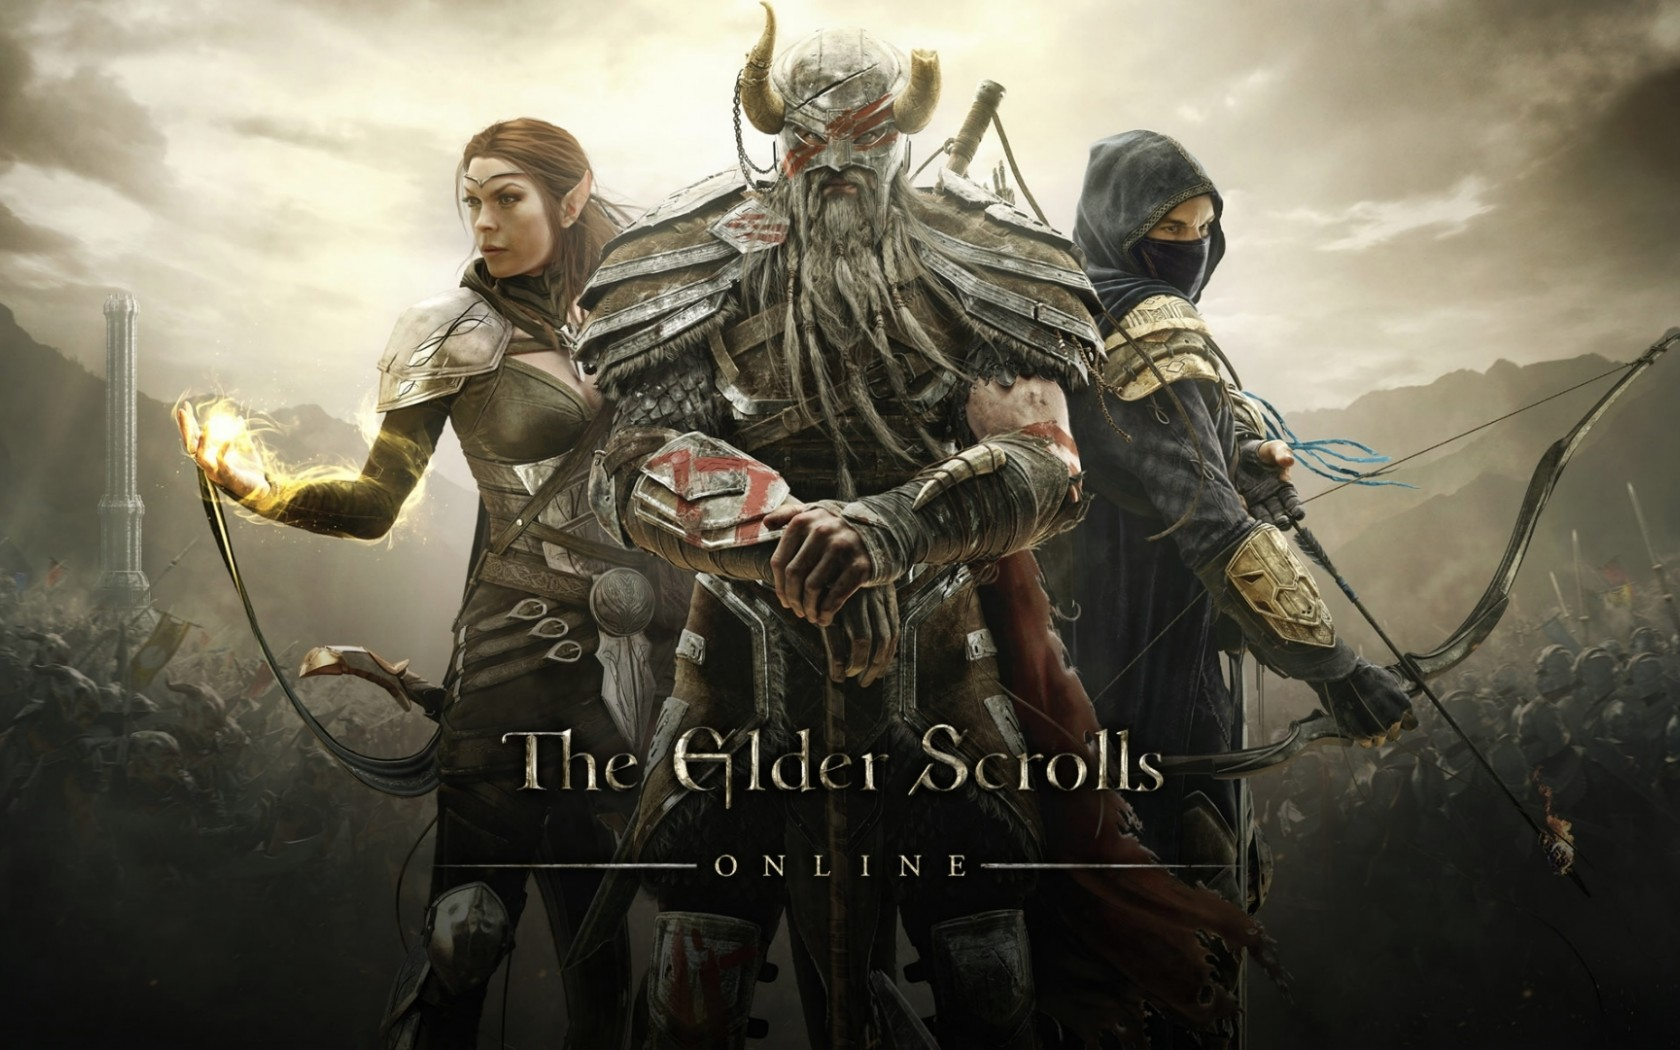 Wallpaper The Elder Scrolls Online: Warriors